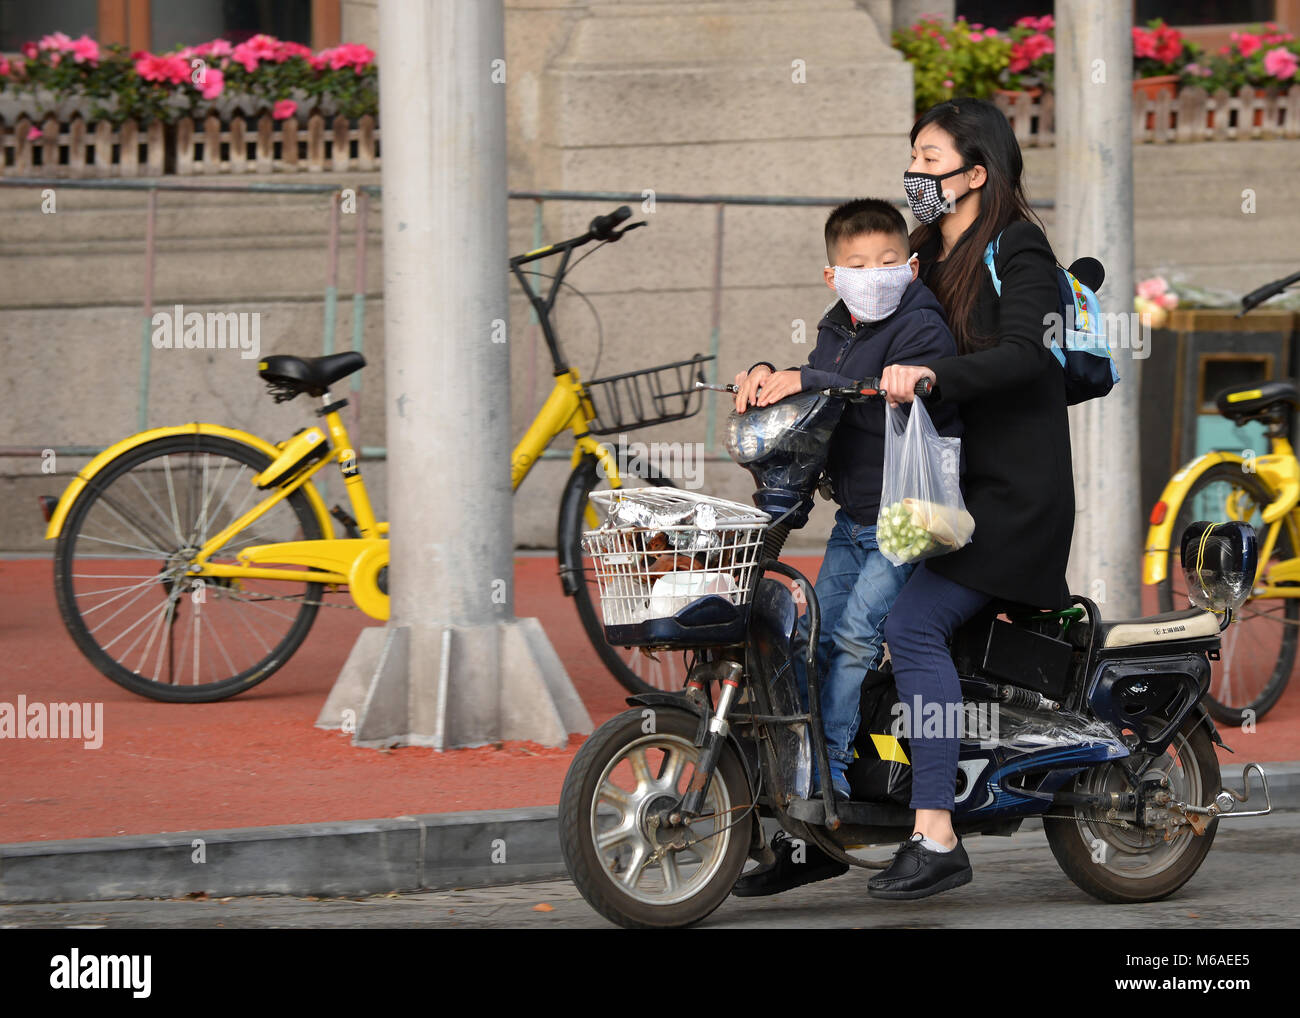 Shanghai, China - November 18, 2017:  Chinese woman and boy, wearing masks, ride a motorized bike on the streets - Stock Image